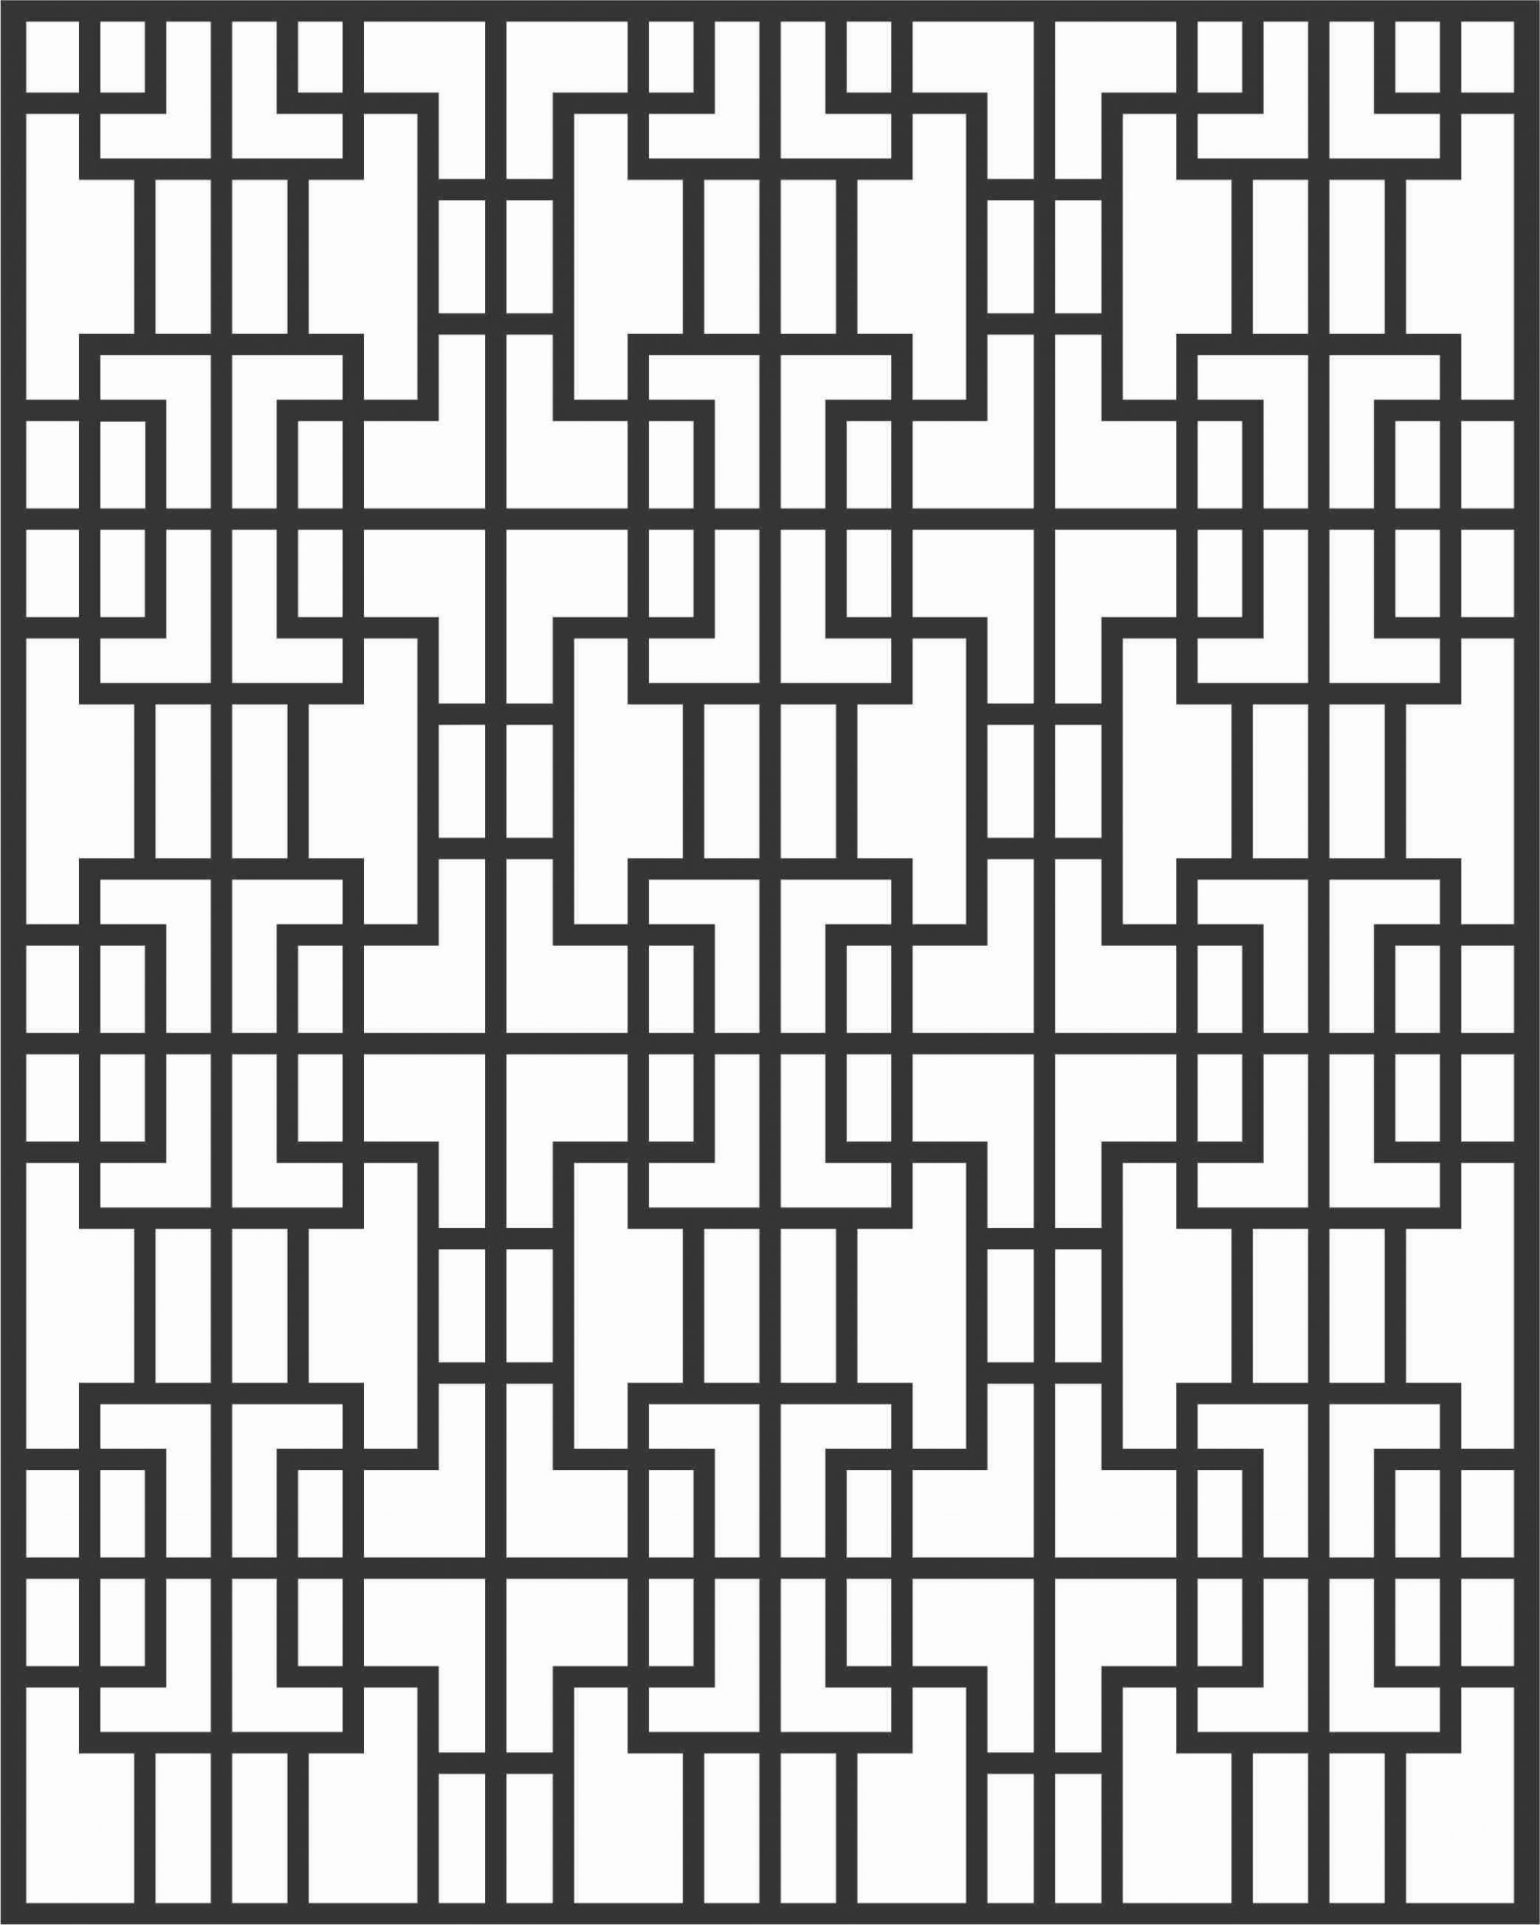 Decorative Screen Patterns For Laser Cutting 98 Free DXF File